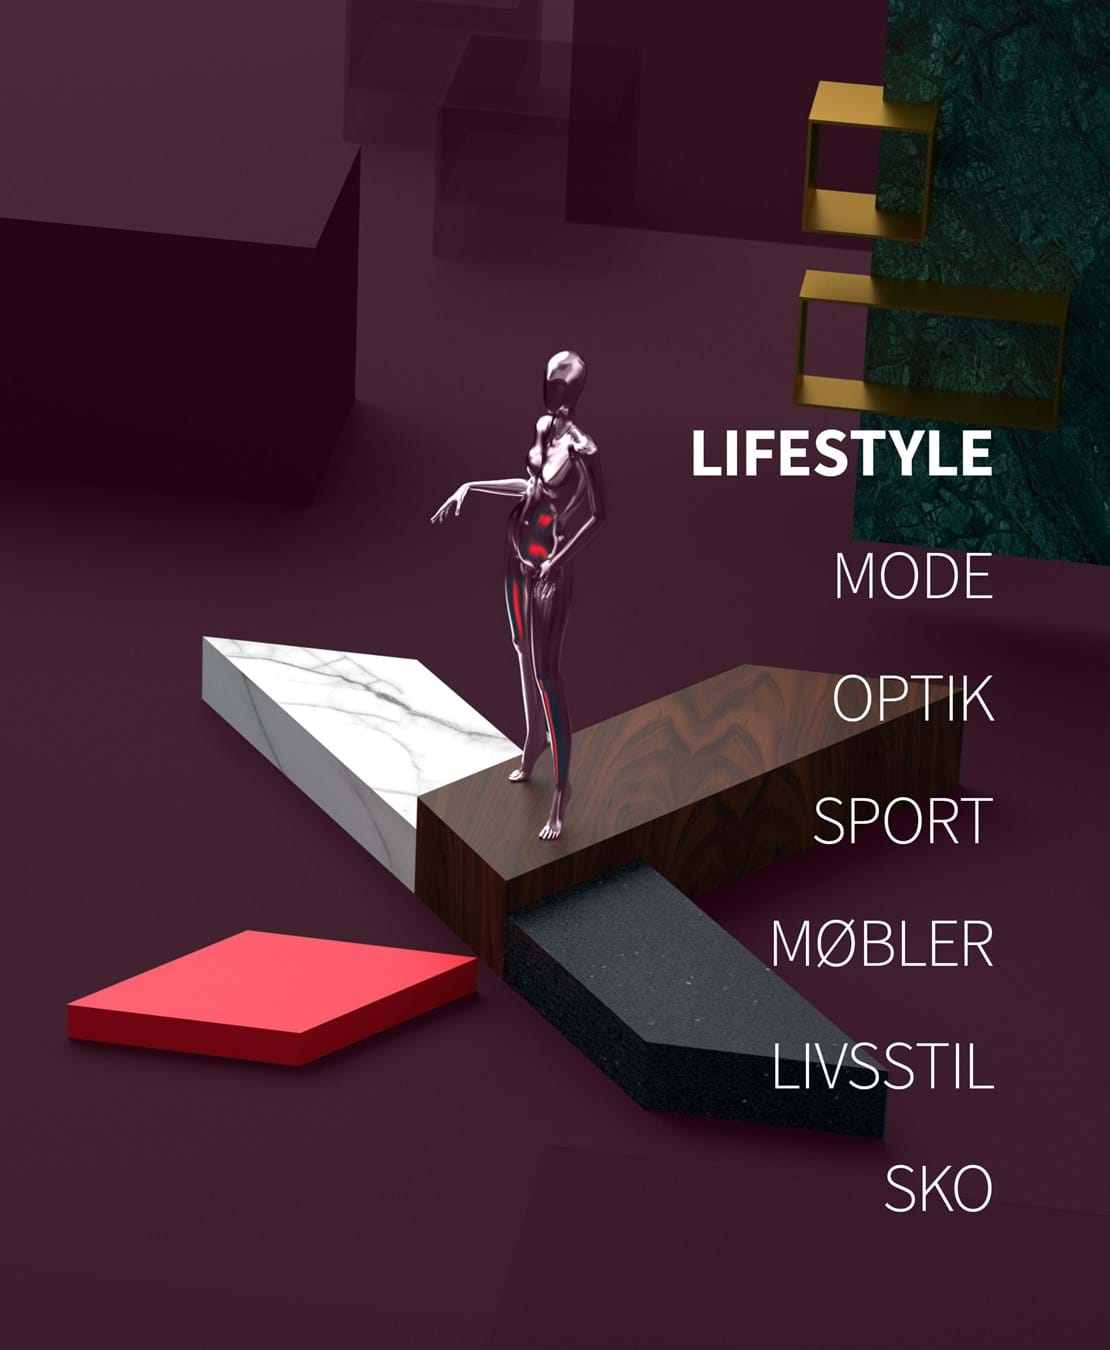 Expedit-kontakt-lifestyle-NO-001.jpg